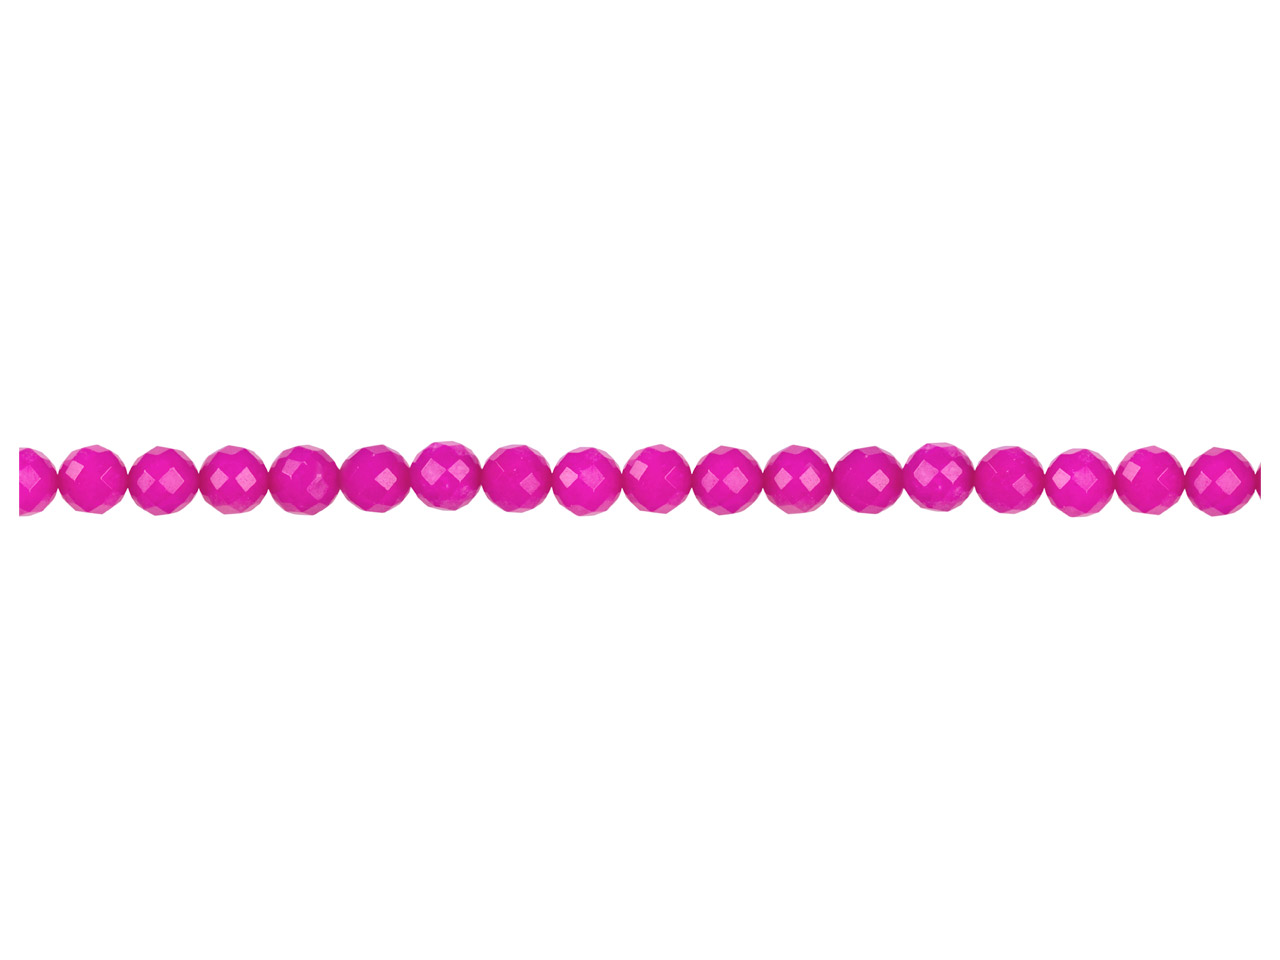 Dyed Pink Jade Faceted Semi        Precious Round Beads 8mm, 16